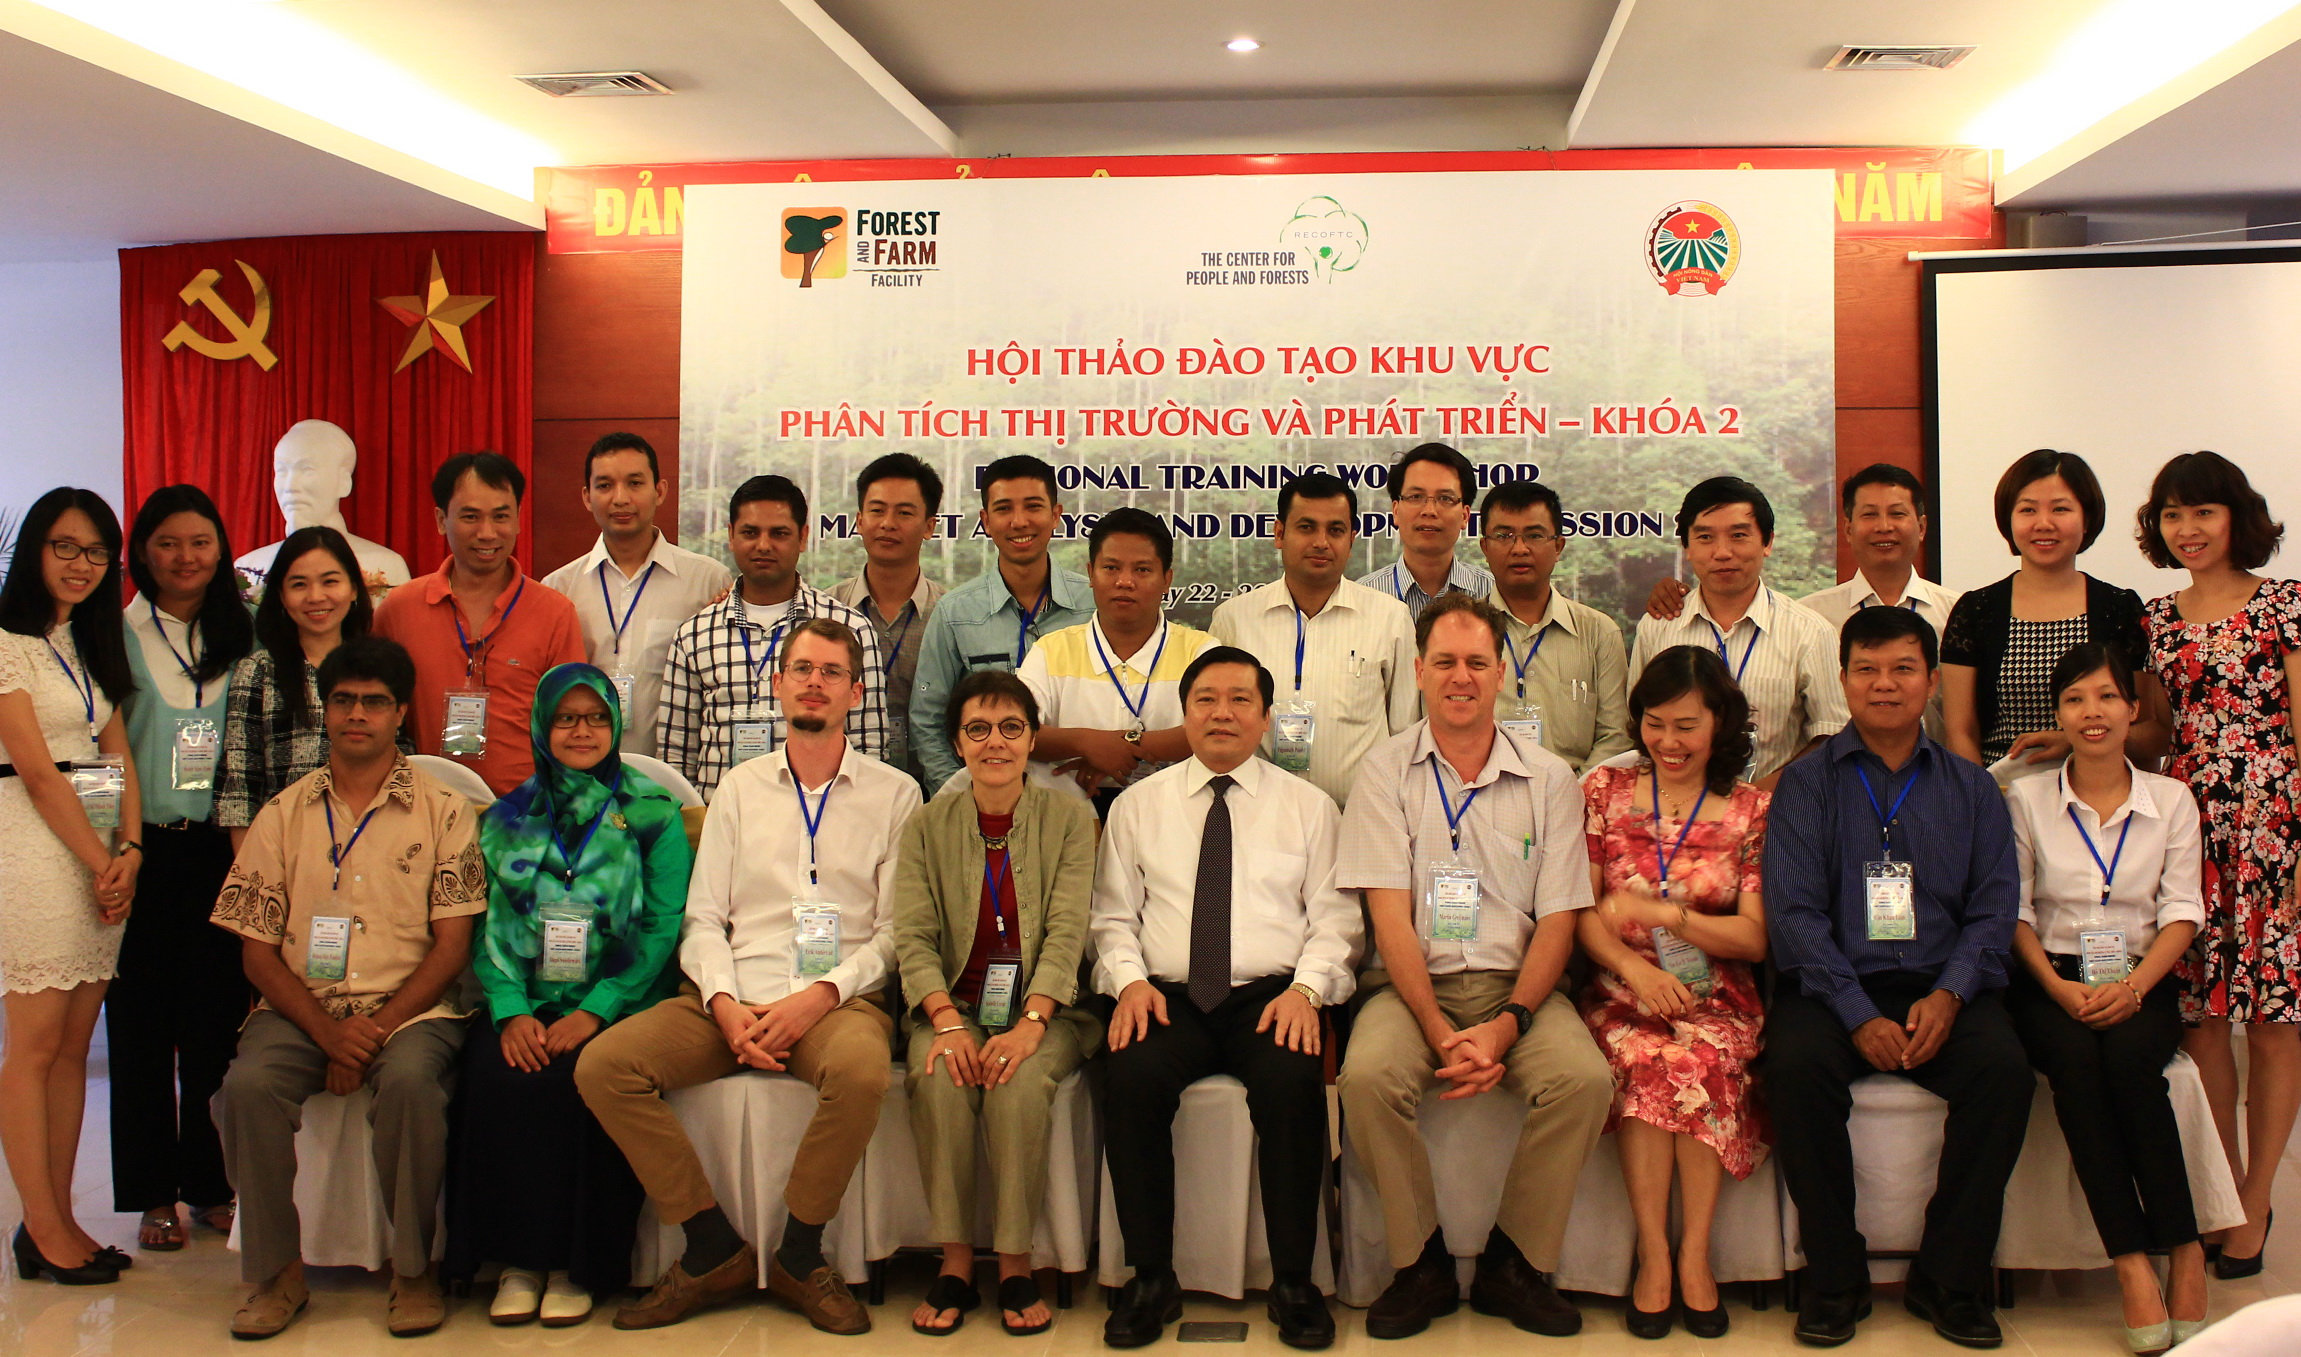 Vietnam Farmers Union hosted the regional training of trainers on the Market Analysis and Development